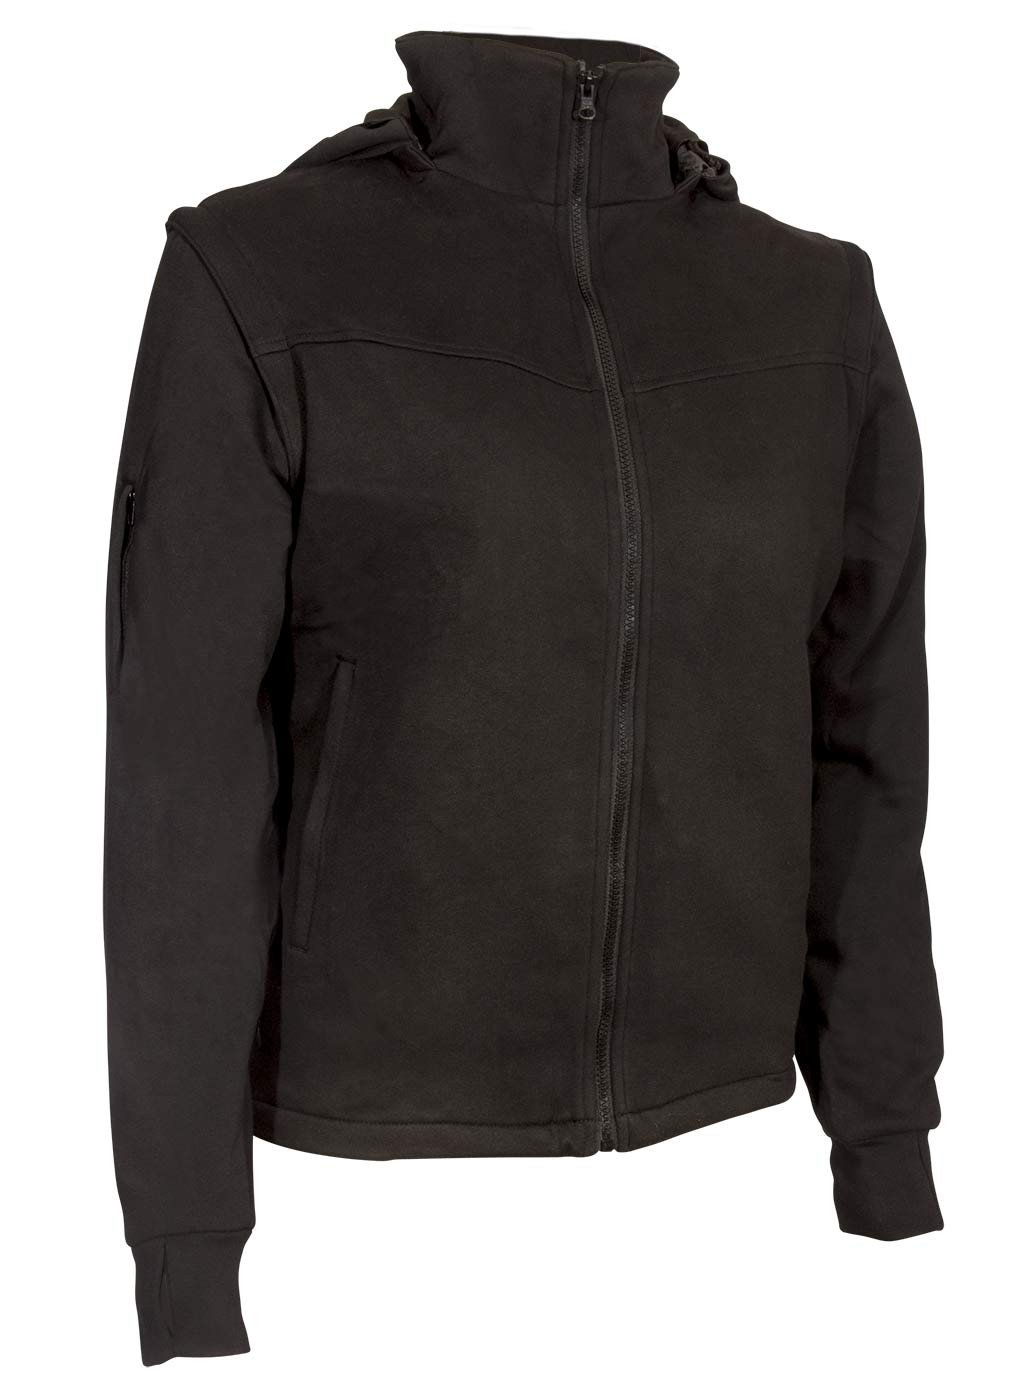 black sweat shirt womens travel jacket